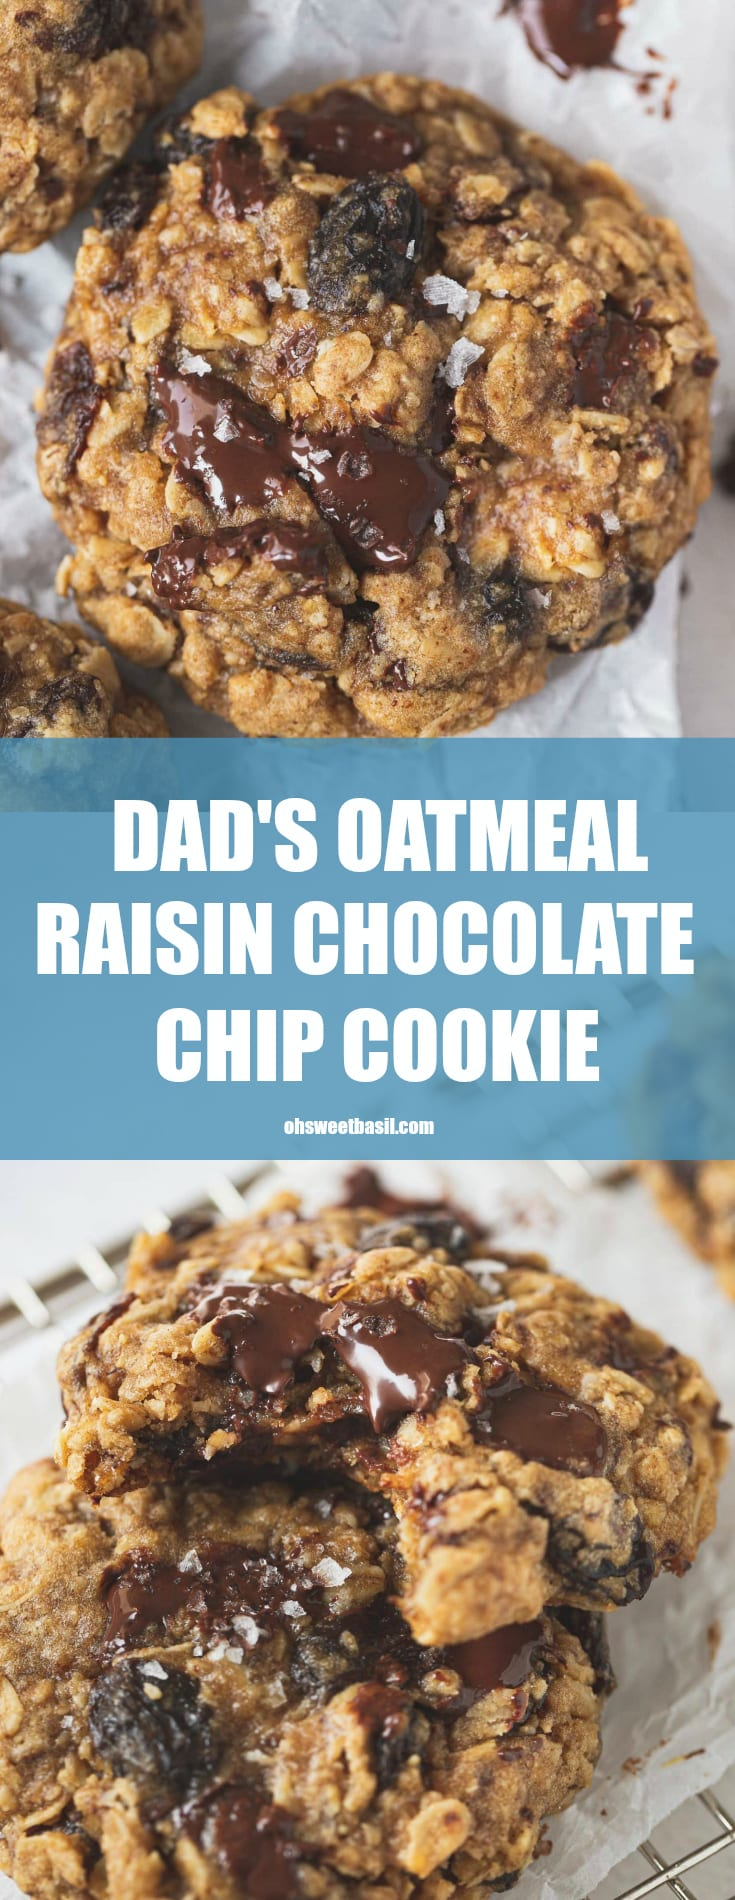 A warm oatmeal raisin chocolate chip cookie. There are raisins and chocolate chunks in the cookies.